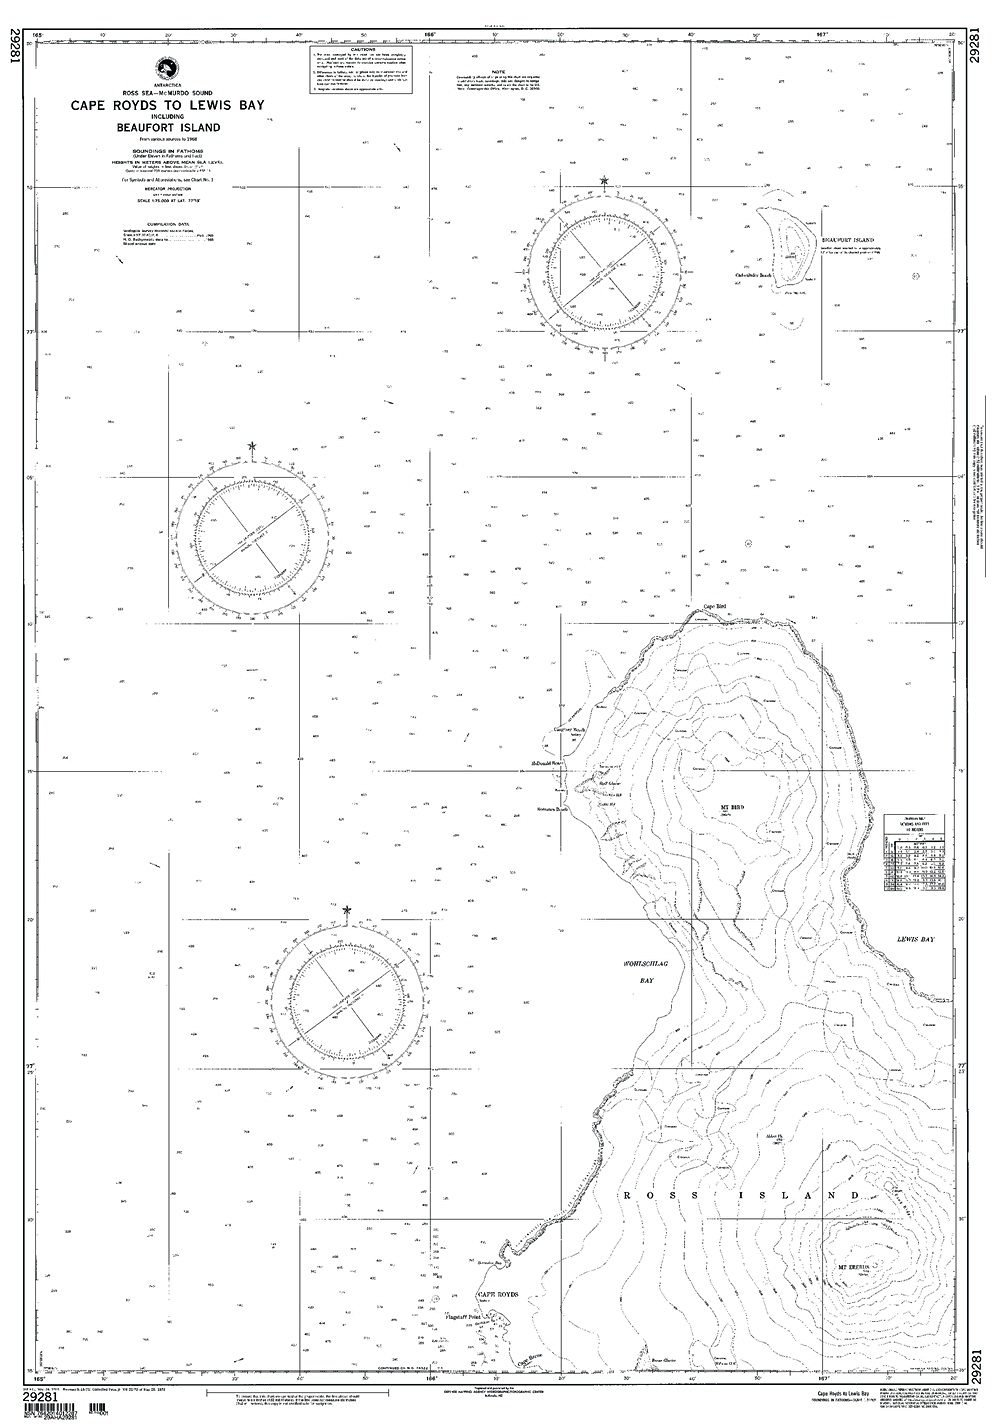 NGA Chart 29281WP: Cape Royds To Lewis Bay Incl Beaufort; 36 X 54; WATERPROOF